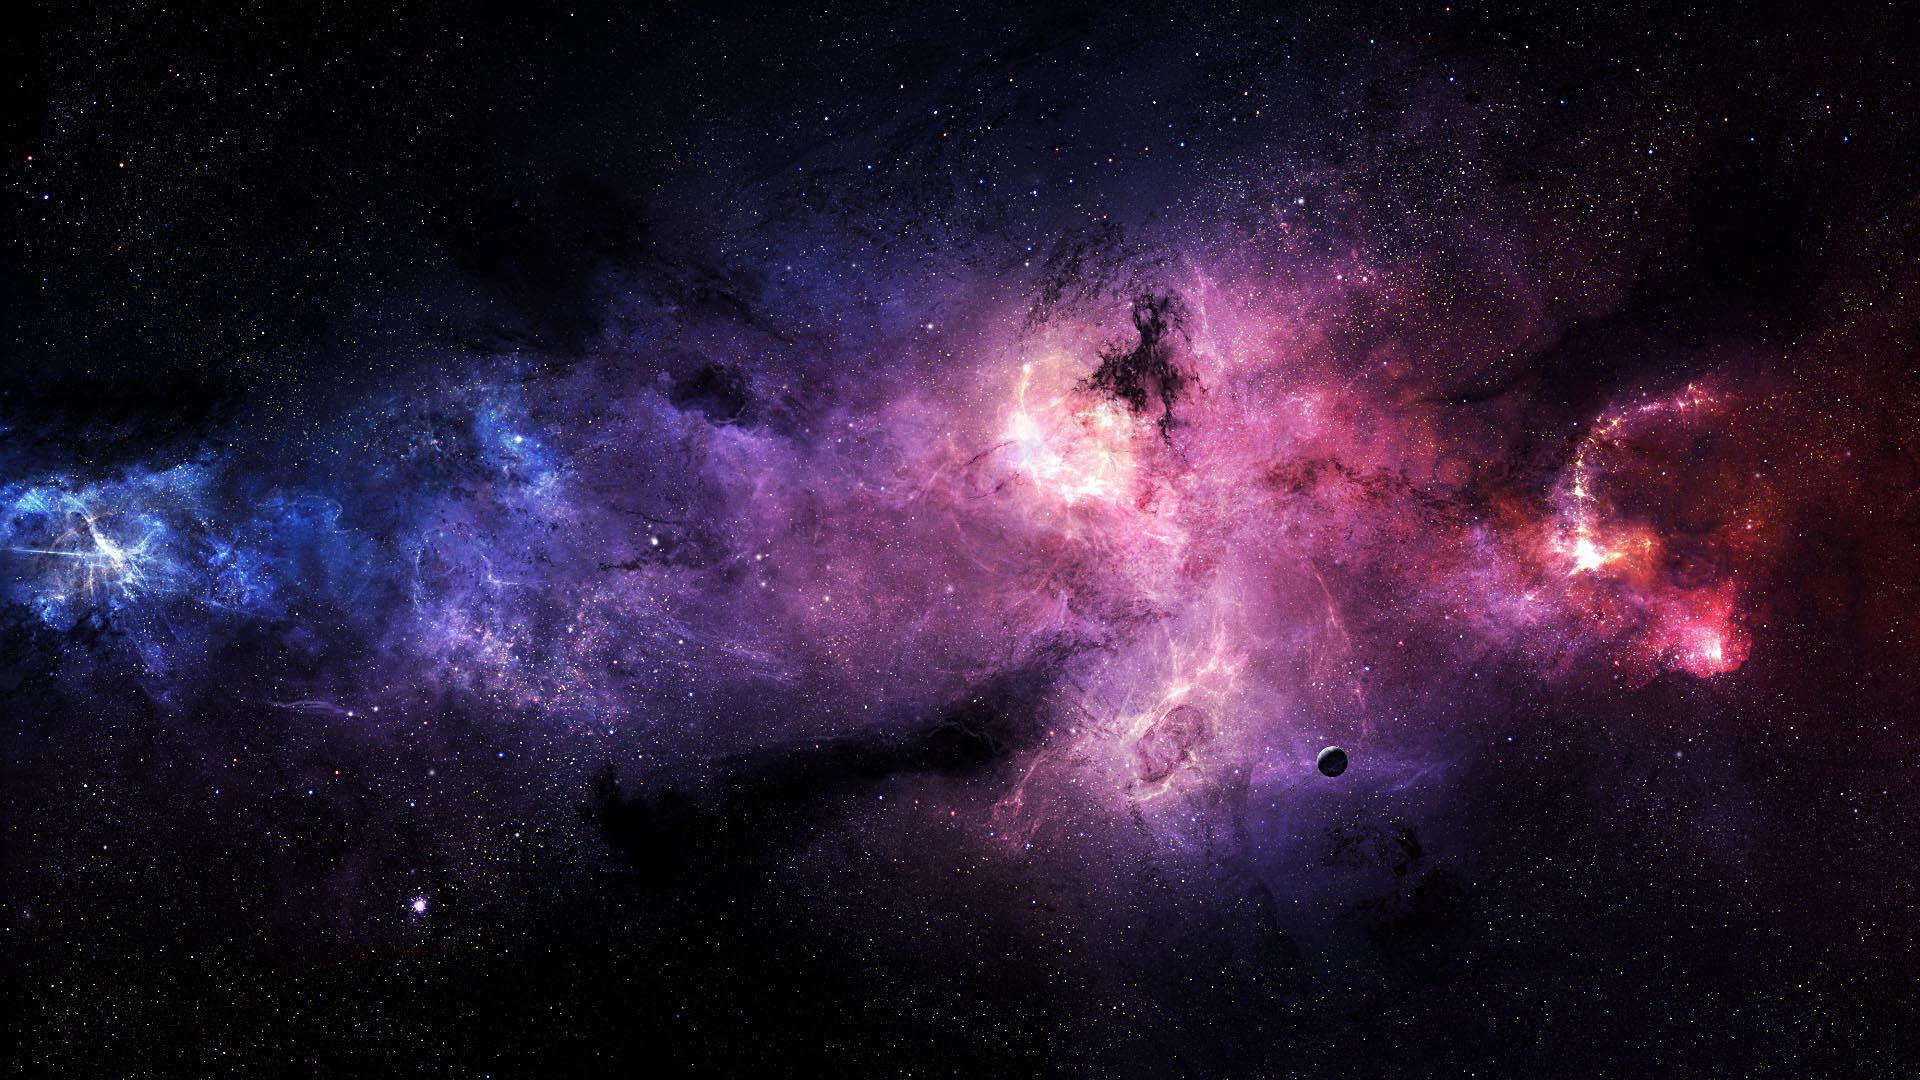 1920x1080 Galaxy Stars Desktop Pc And Mac Wallpaper